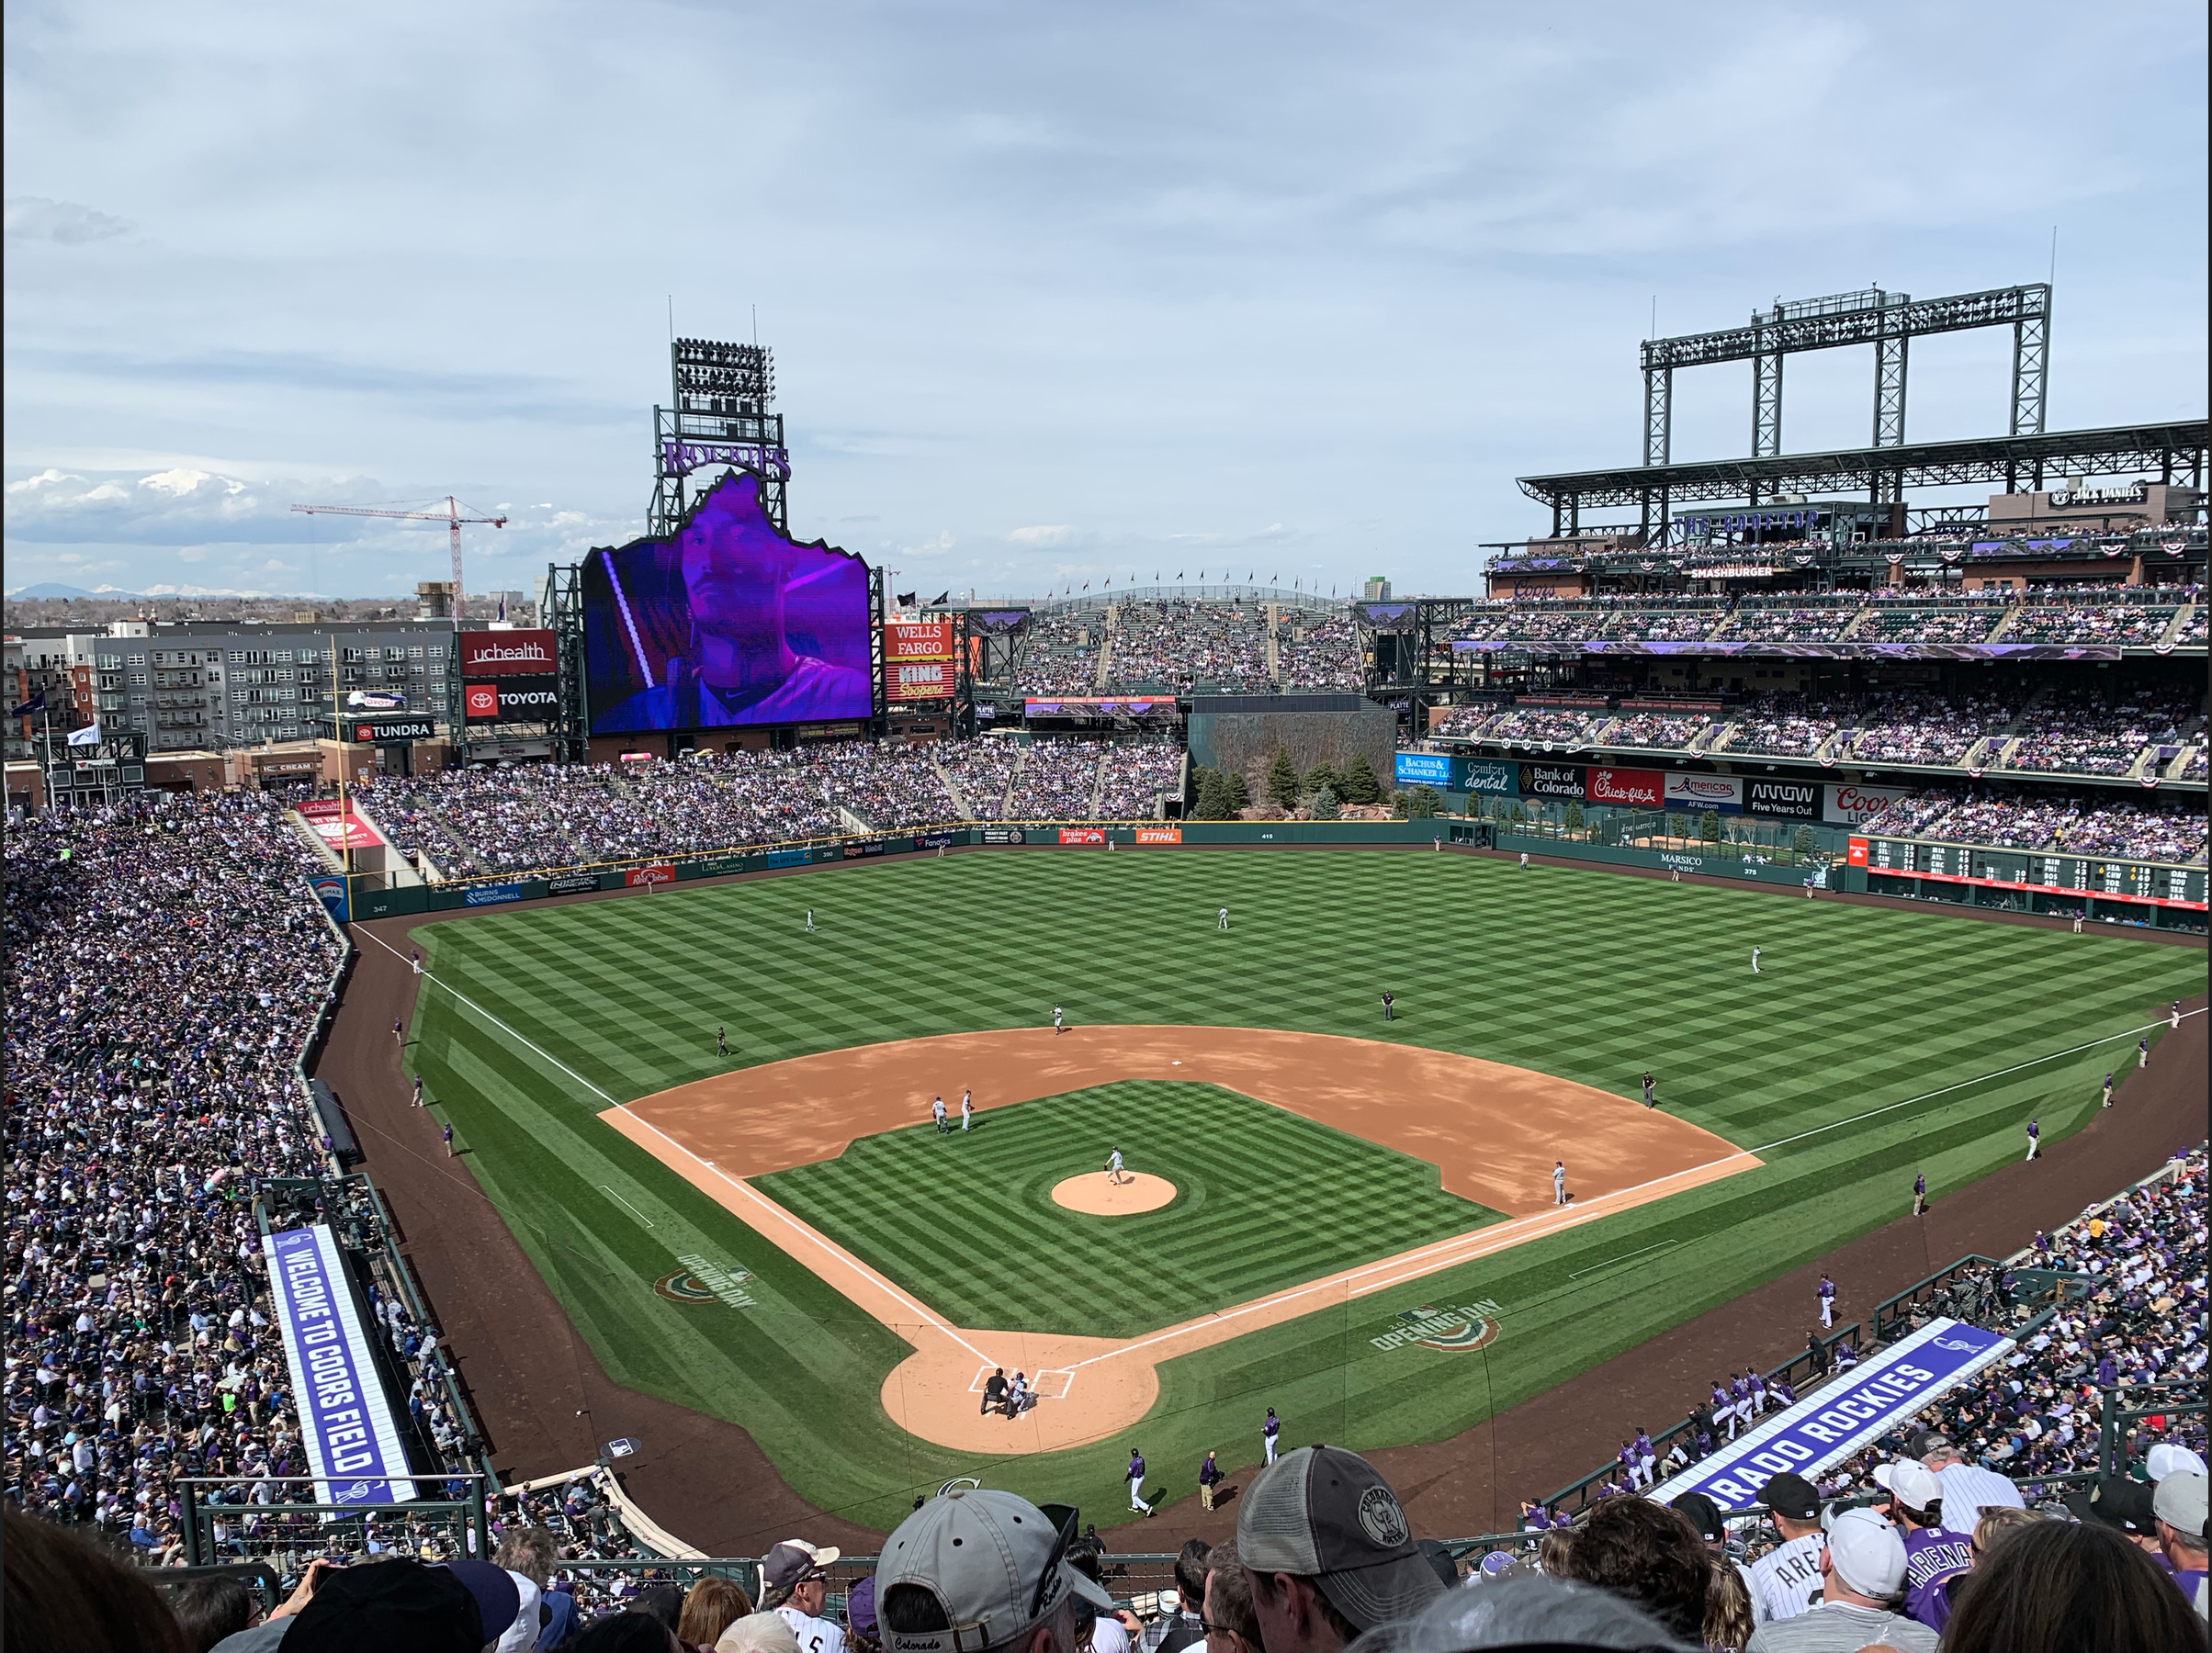 Can you accurately predict MLB games based on home and away